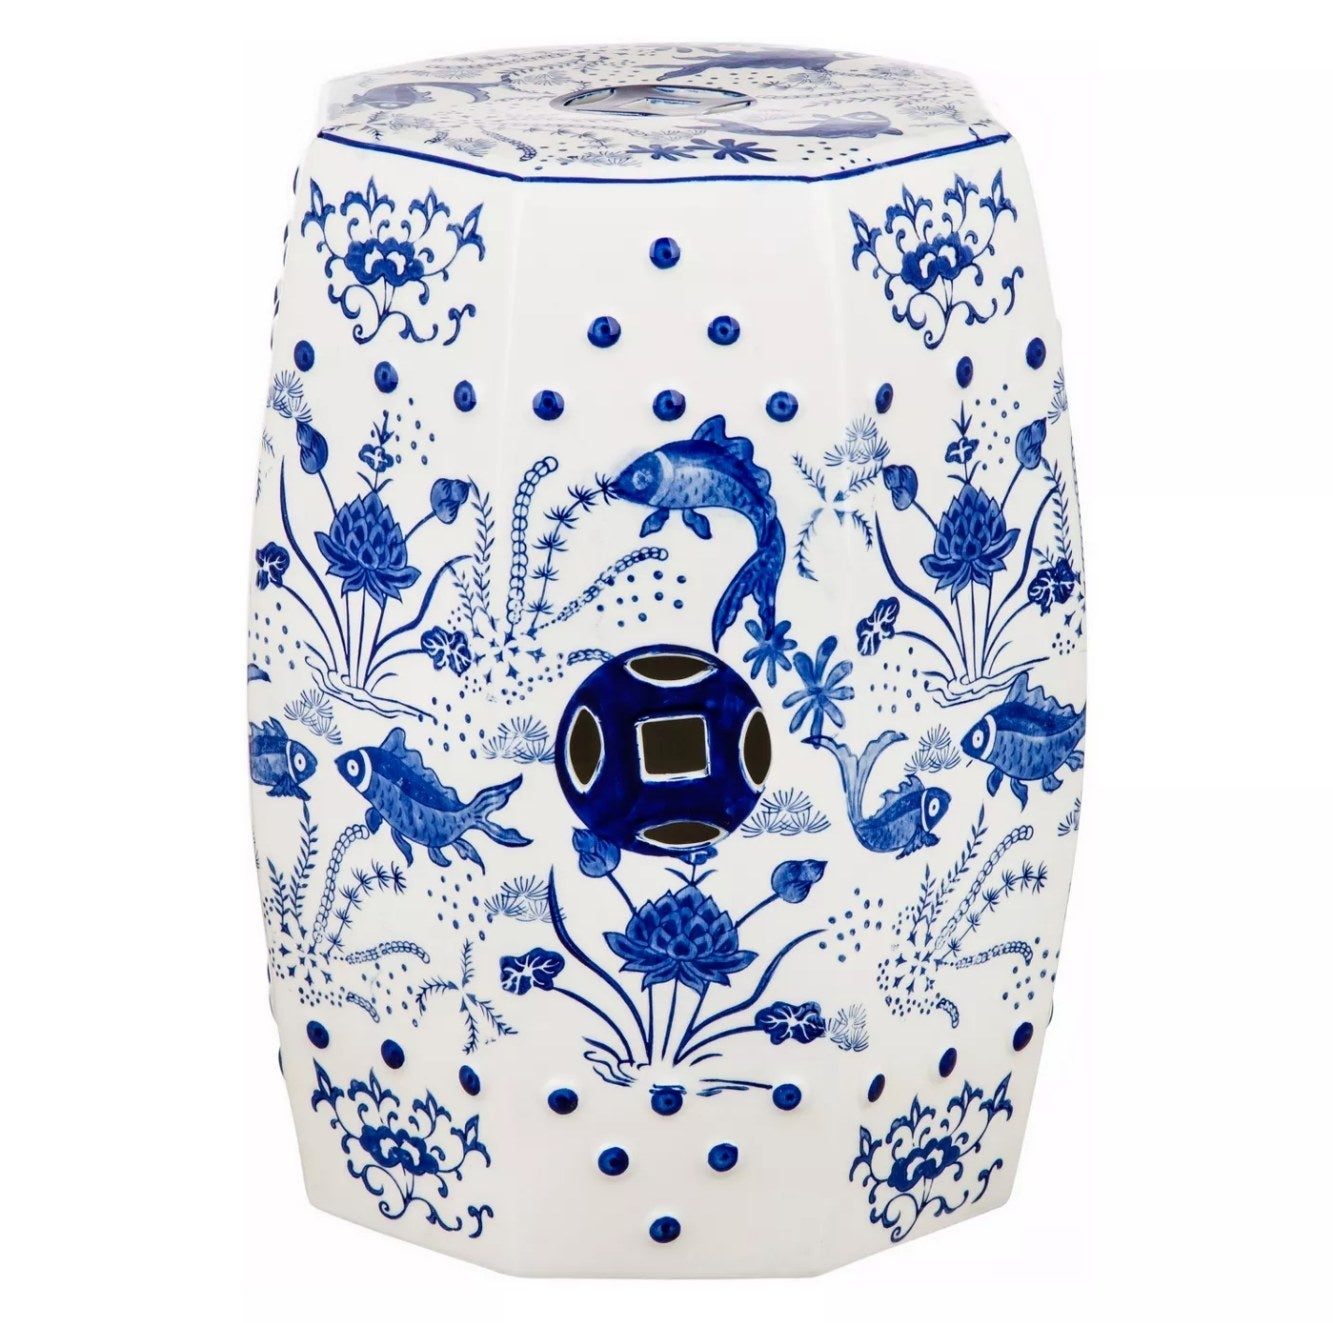 The blue and white floral stool